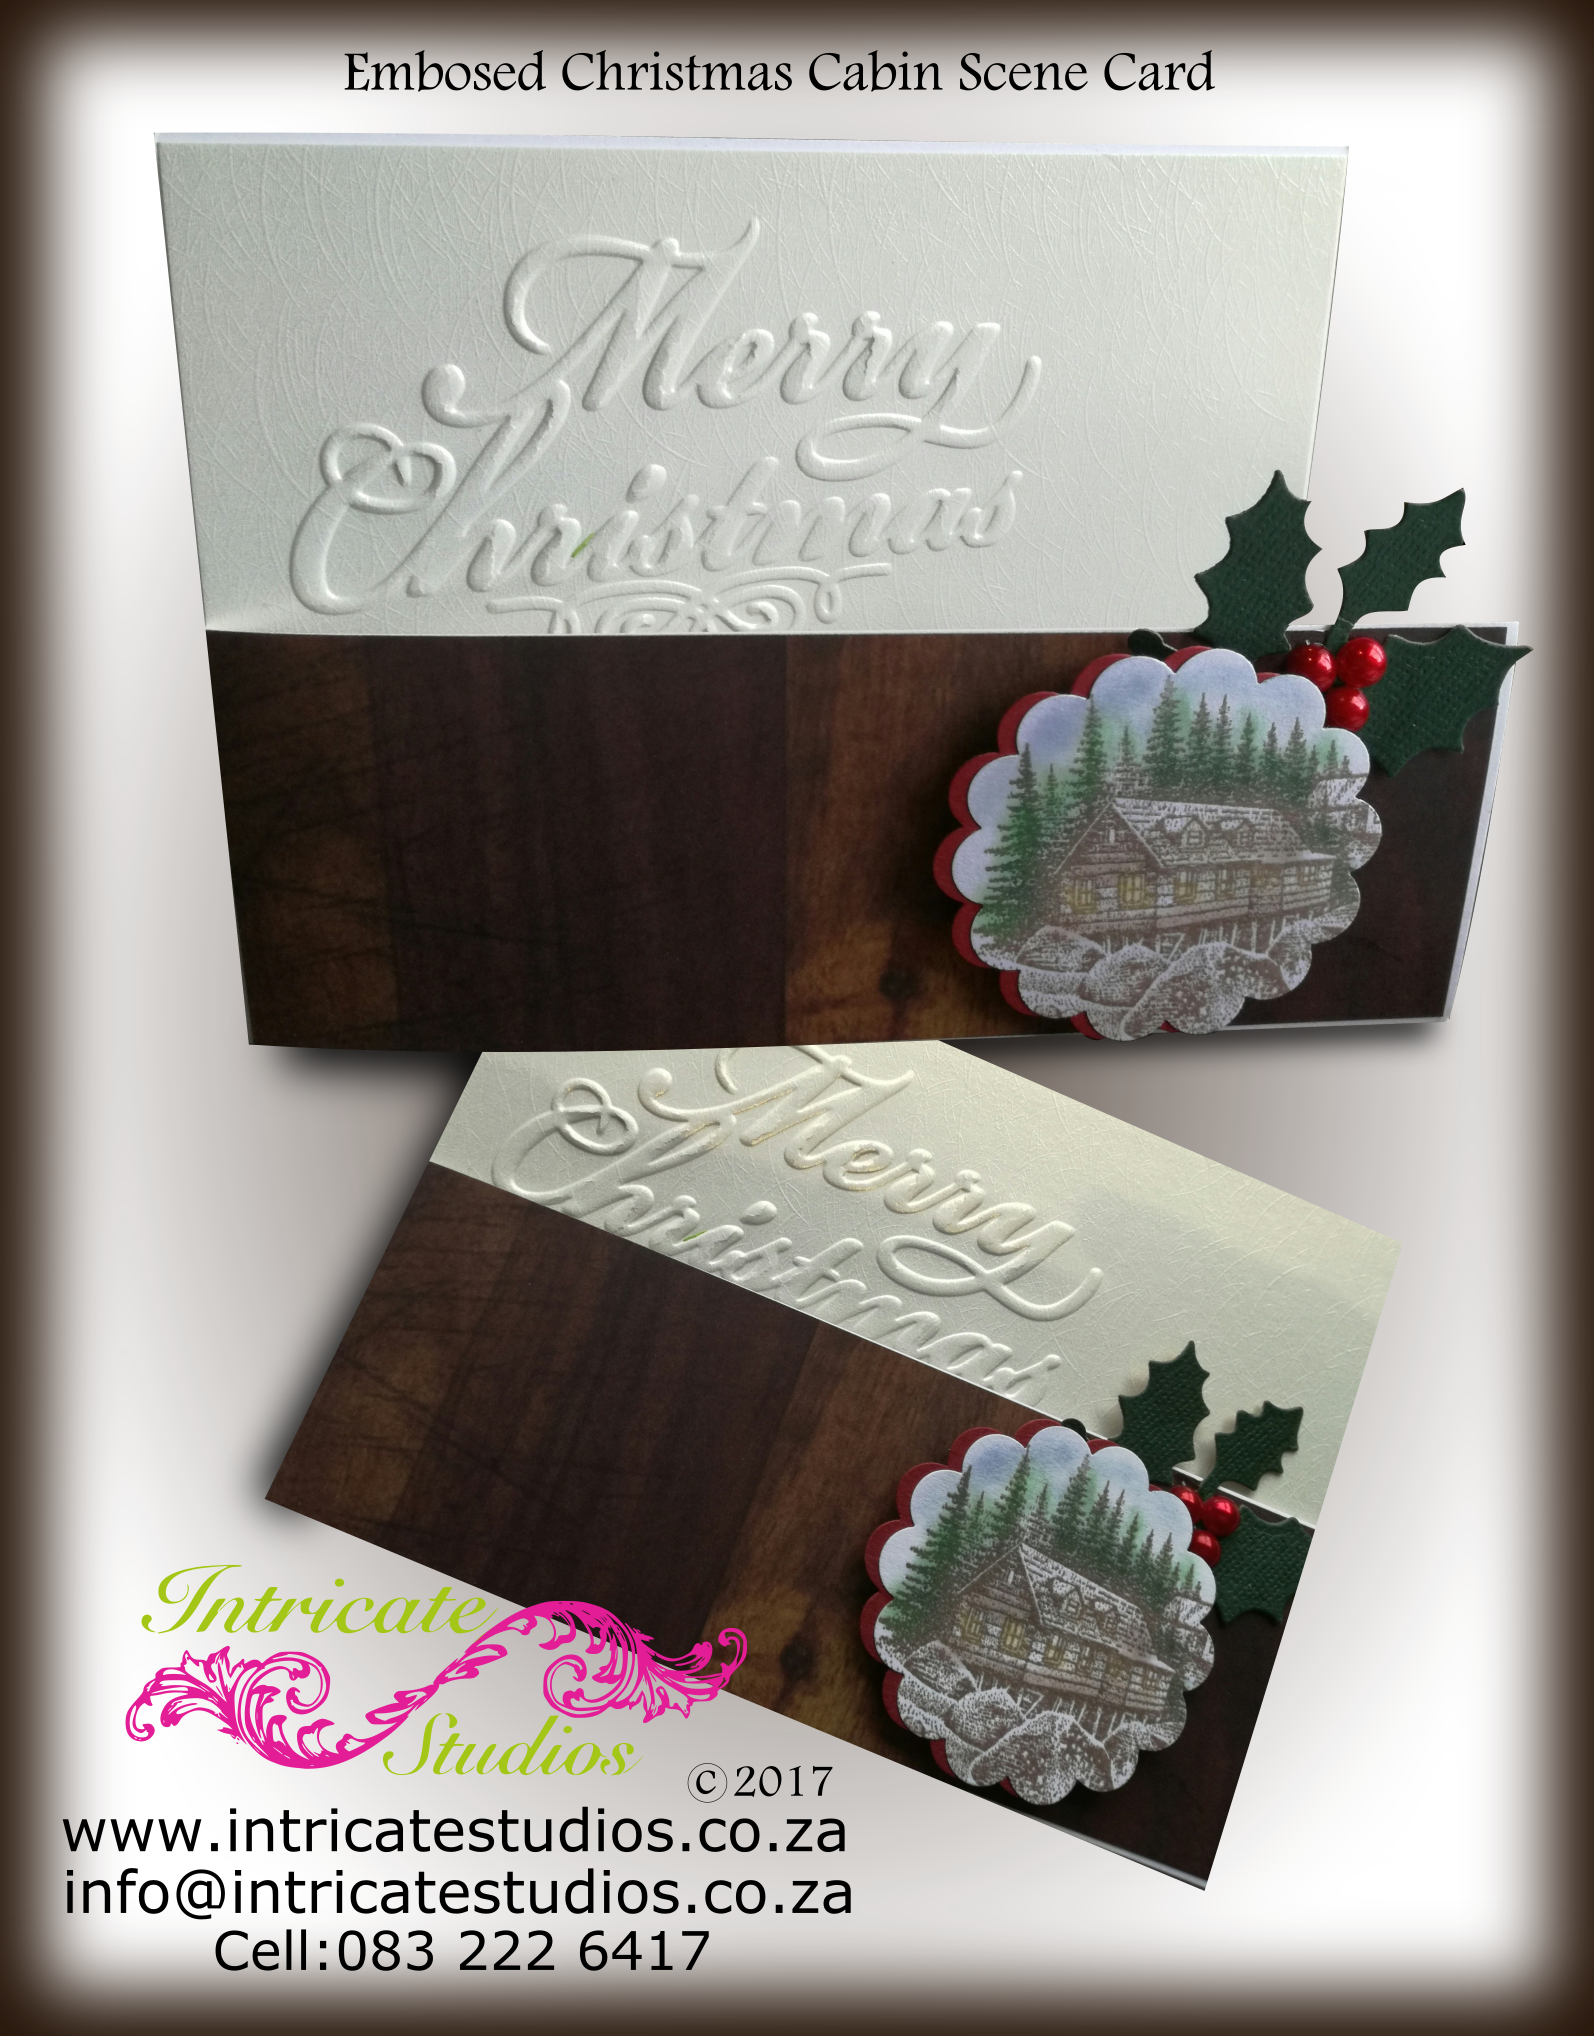 Embosed Chrsistmas Cabin Card